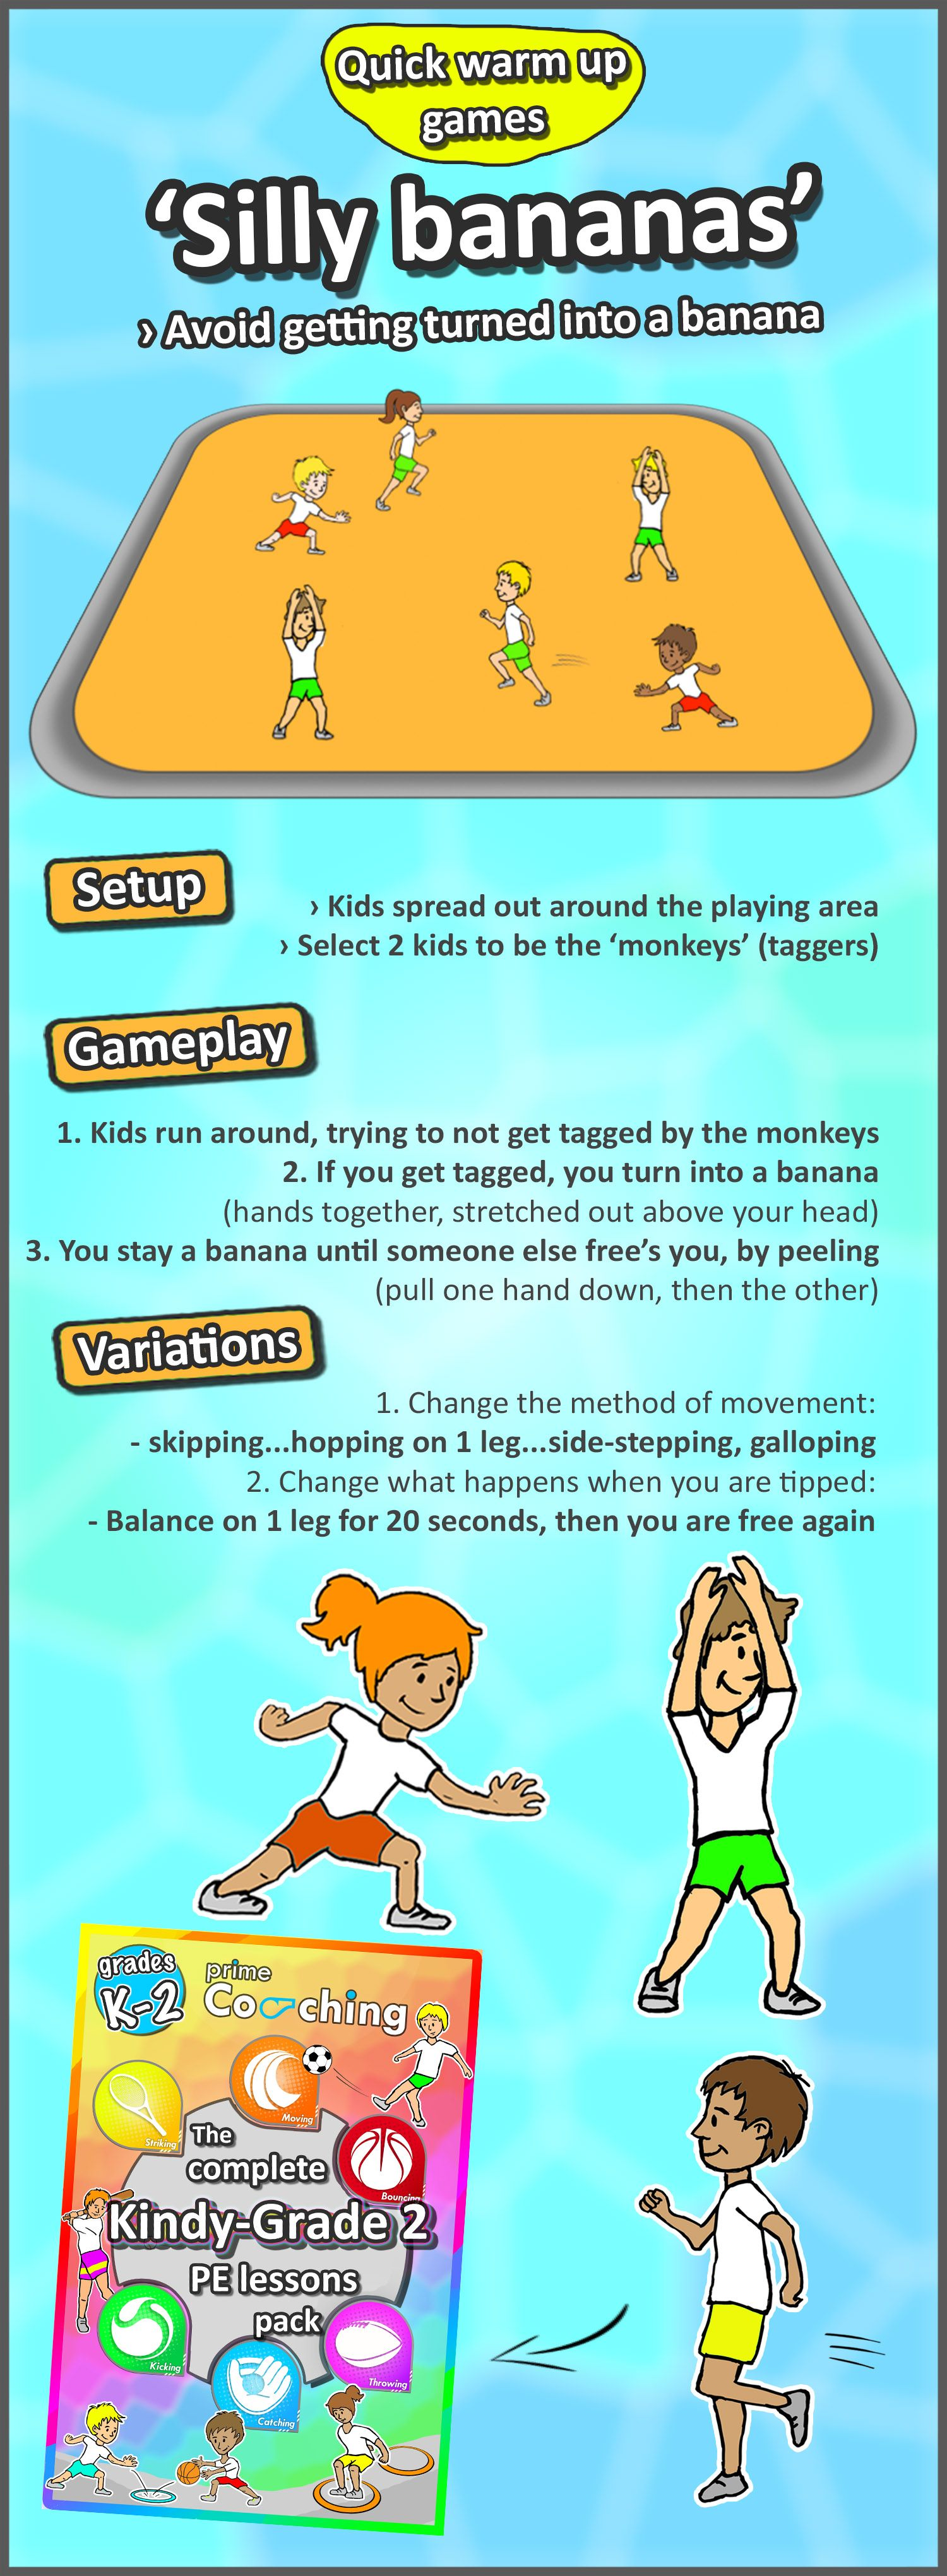 Kindergarten To Grade 2 Pe Games - Complete Sport Skill And Games